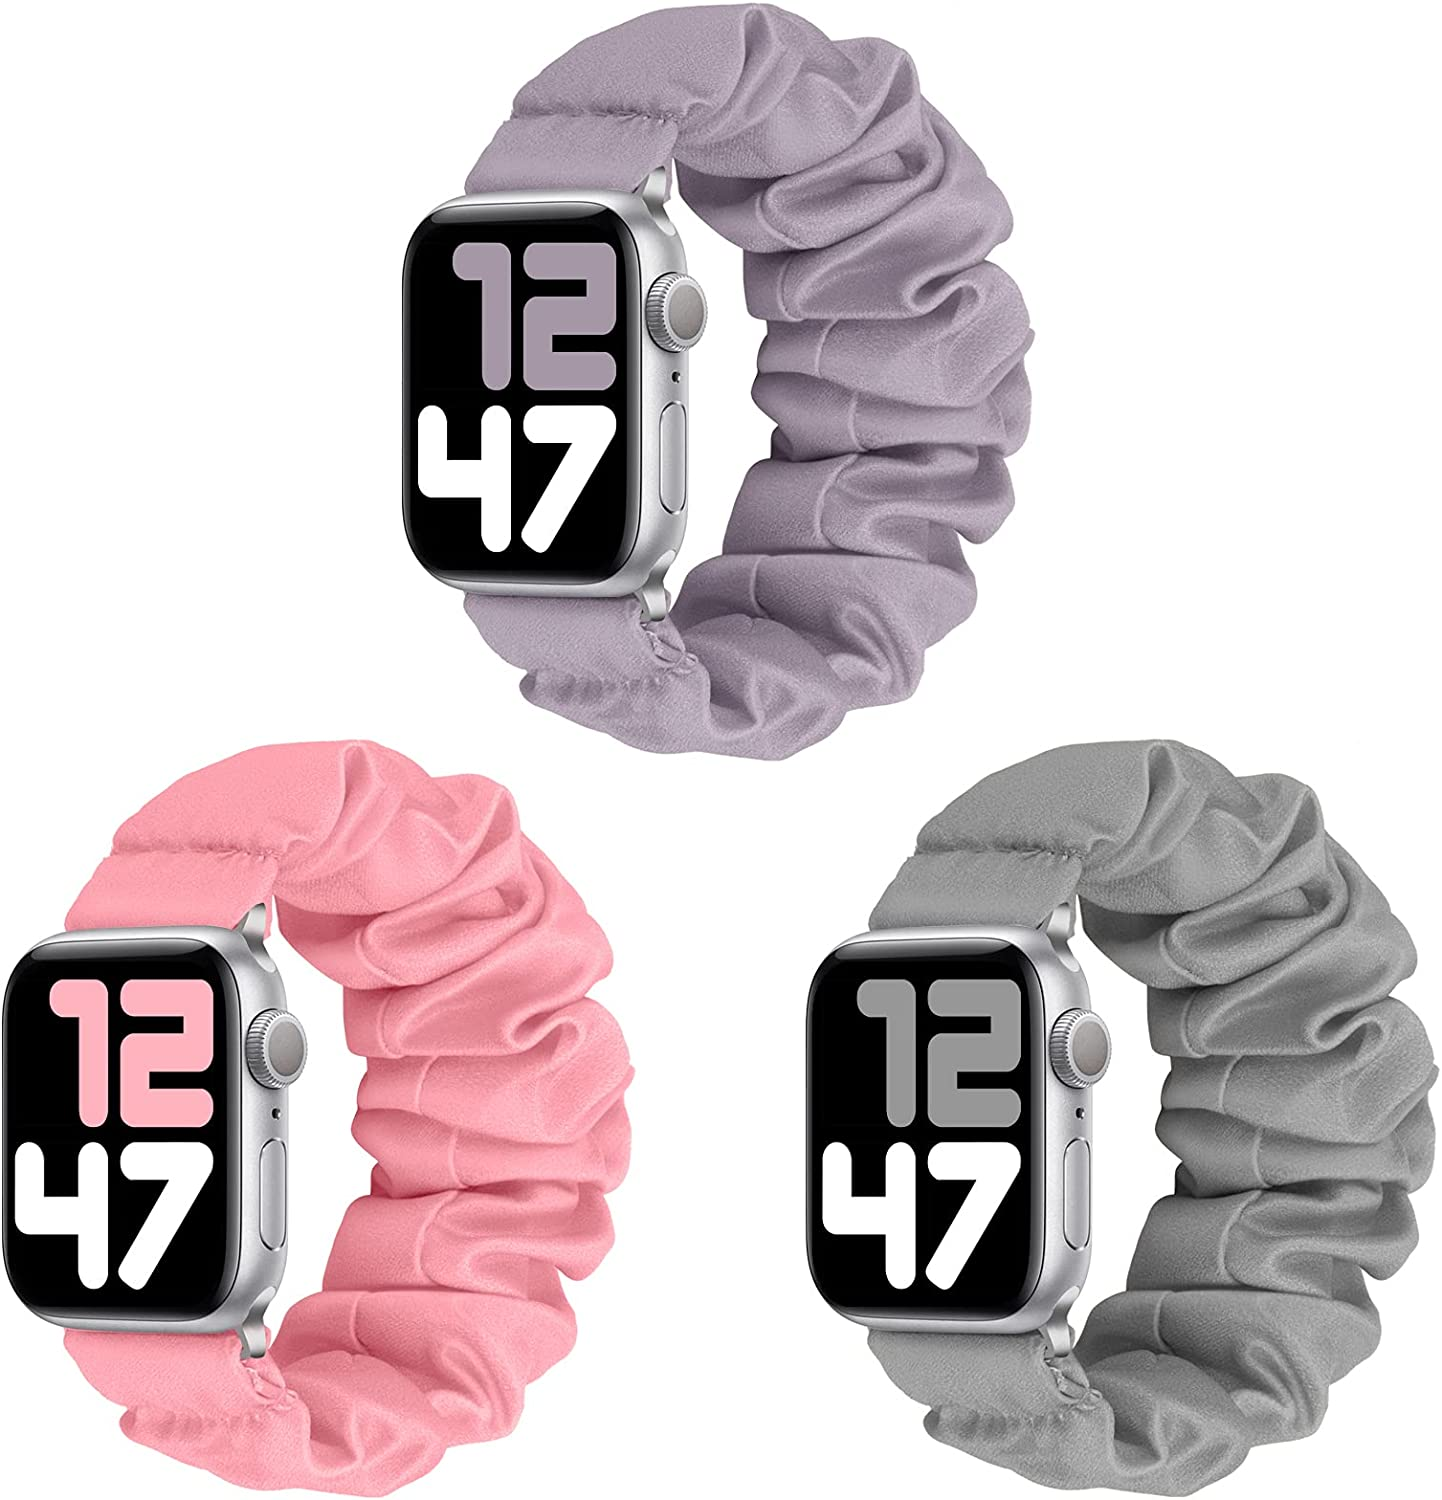 JIELIELE 3 Packs Compatible with Scrunchie Apple Watch Band 38mm 40mm 42mm 44mm for Women, Cute Stretchy Elastic Wristbands Straps Watch Band for iWatch Series 6 5 4 3 2 1 SE